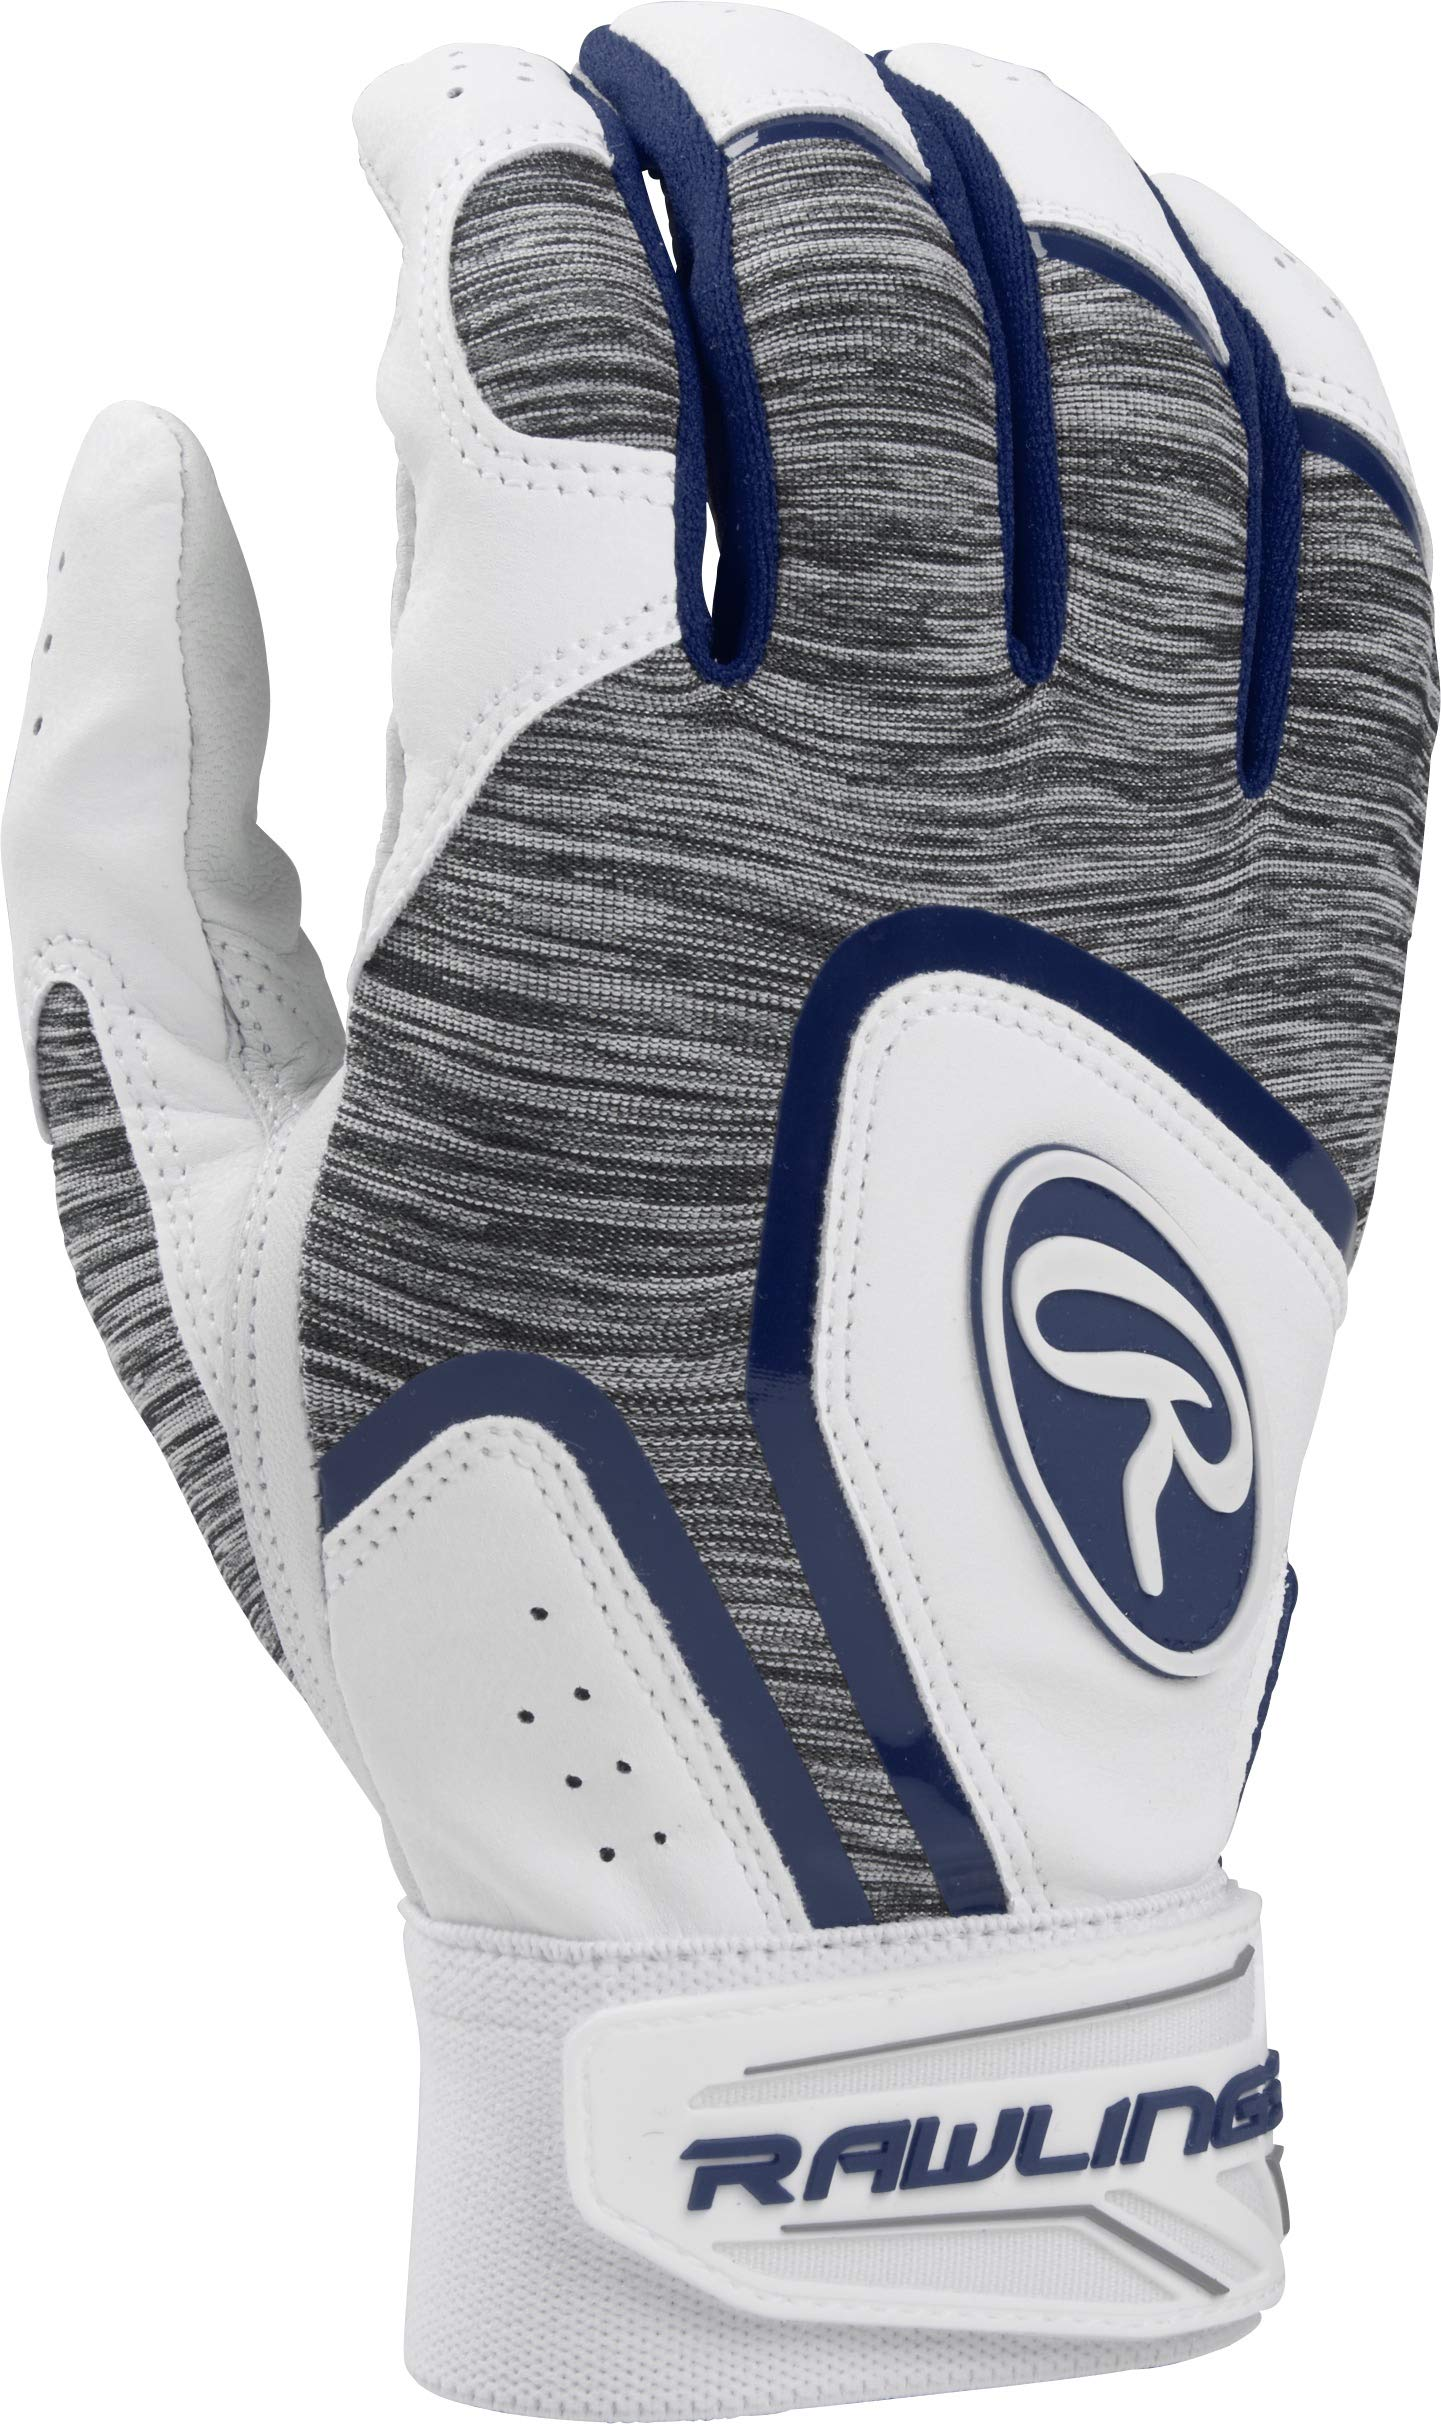 Rawlings 5150WBG-N-90 Rawlngs 5150 Batting Gloves, Navy by Rawlings